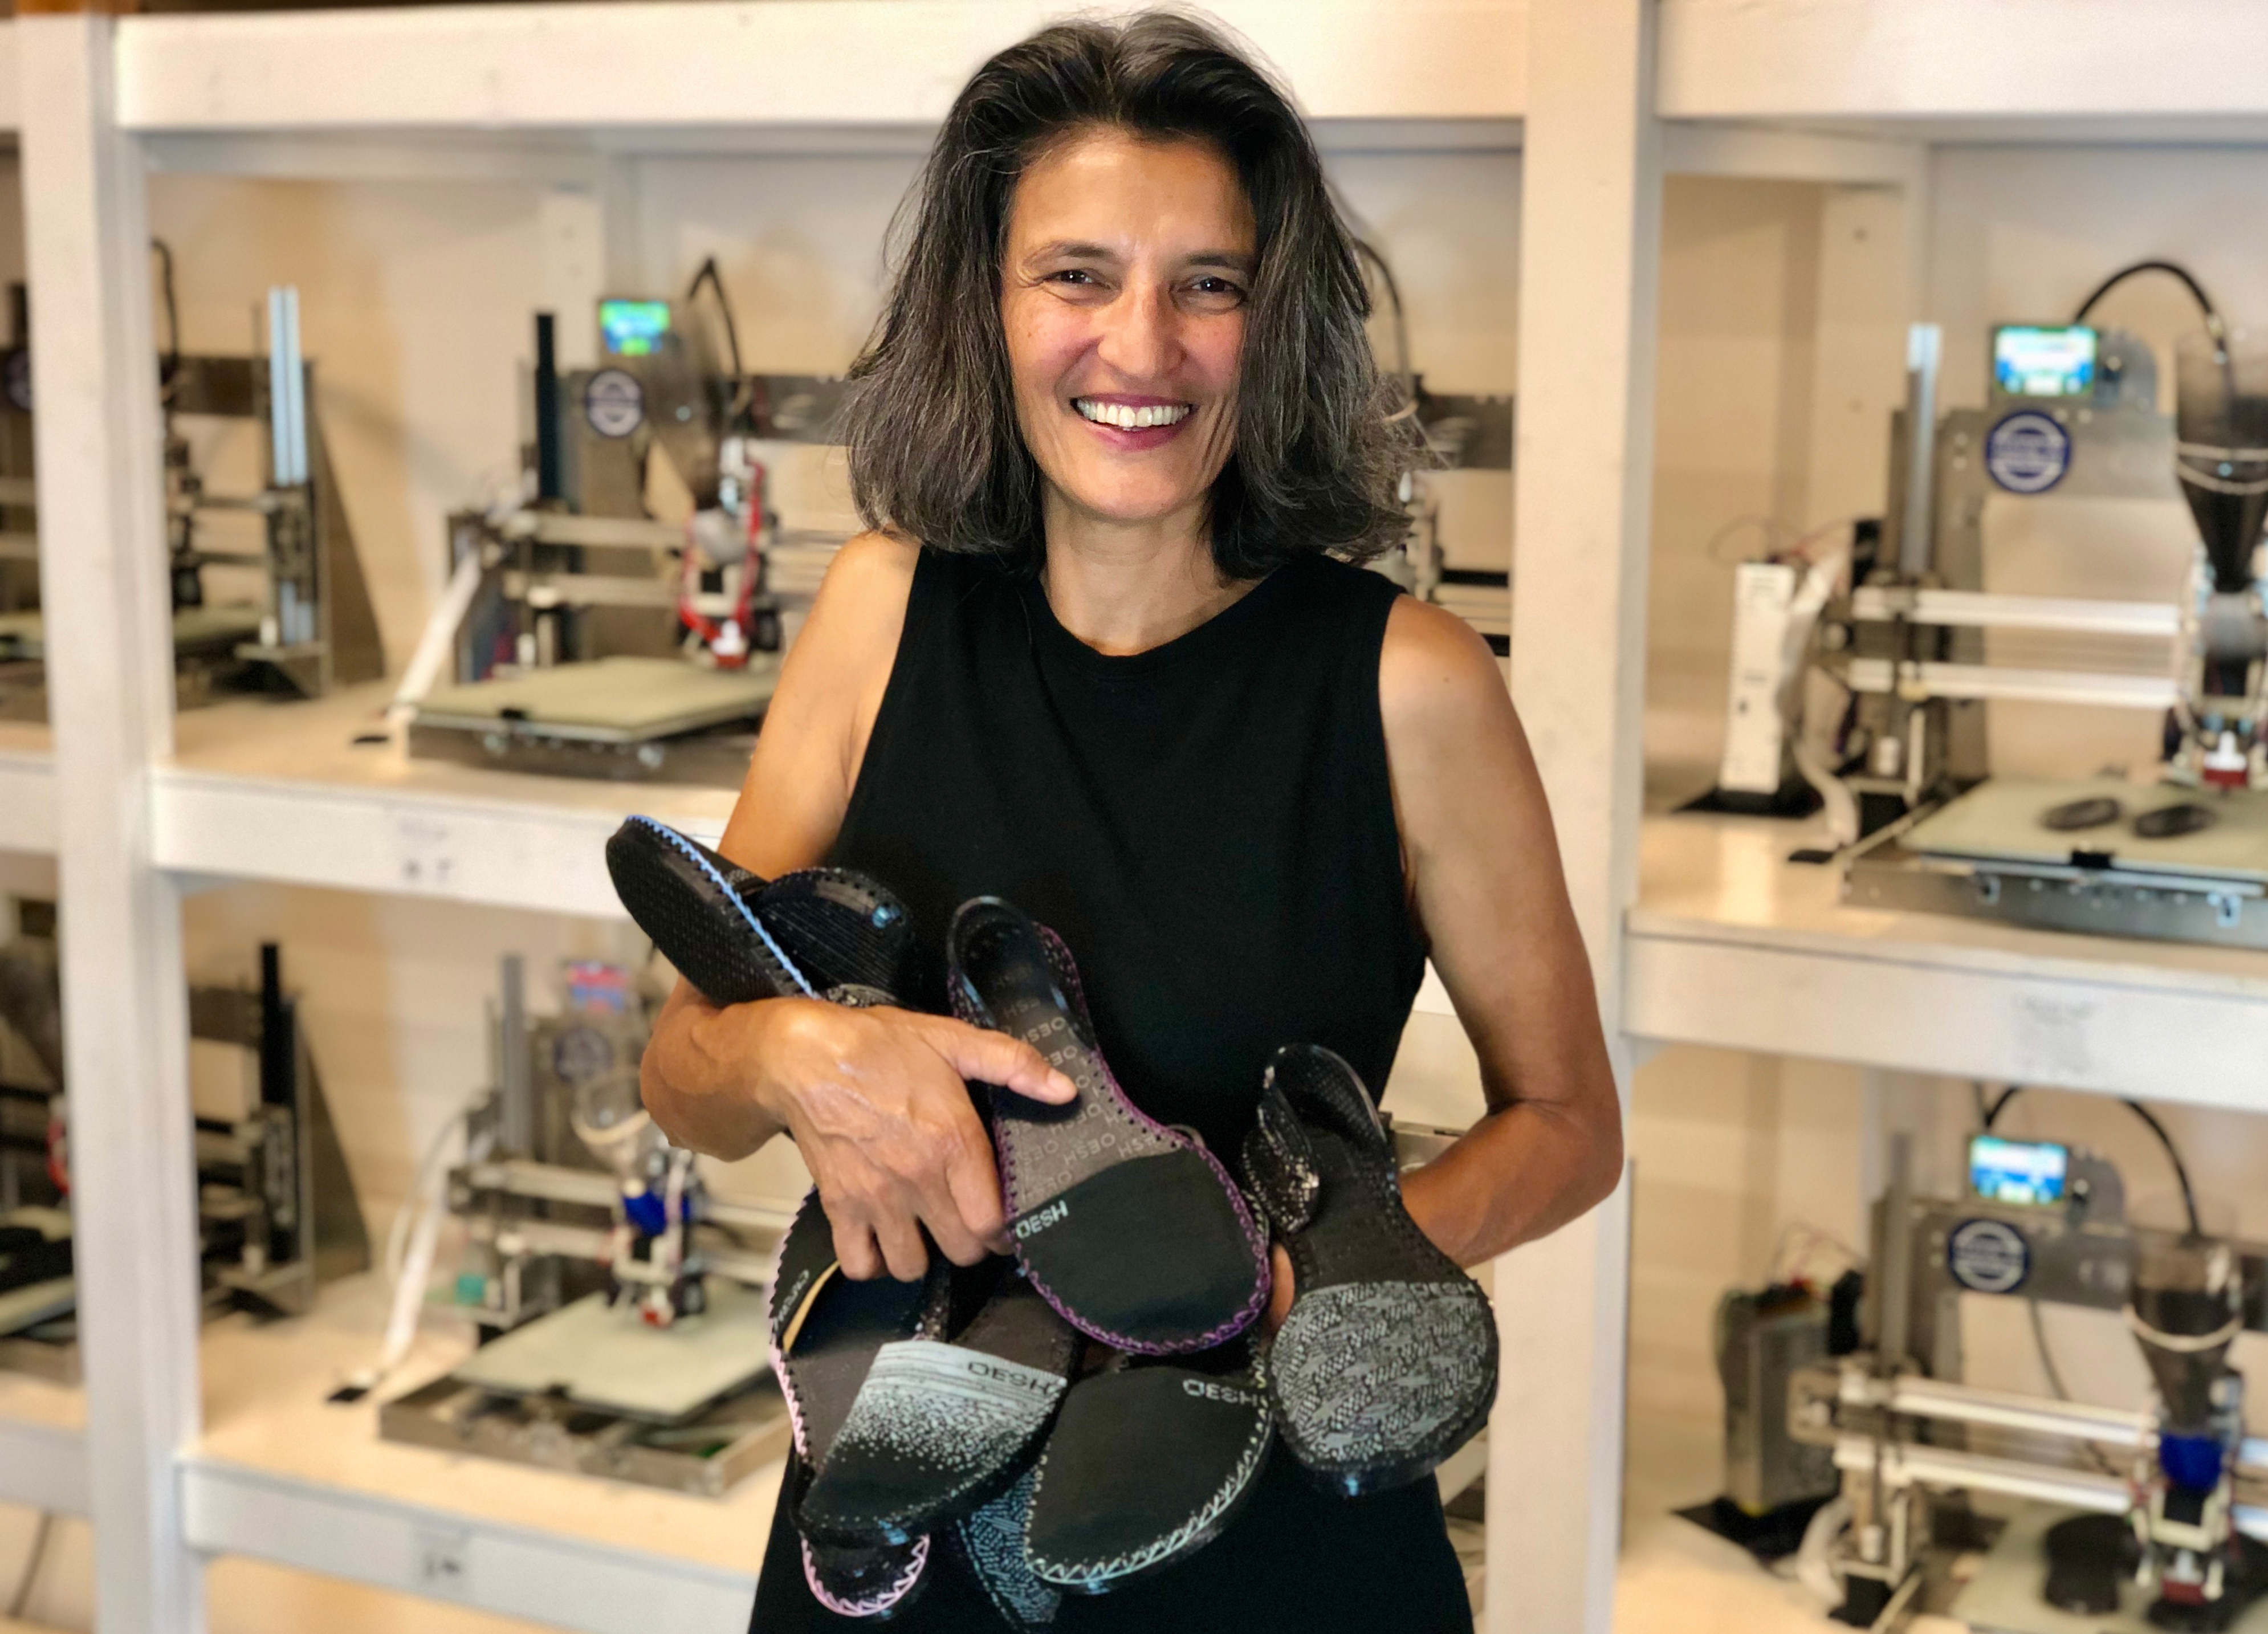 After twenty years of research studying human motion and forces during walking and running, Harvard M.D. Dr. Casey Kerrigan developed Oesh Shoes. (Source: Oesh Shoes)